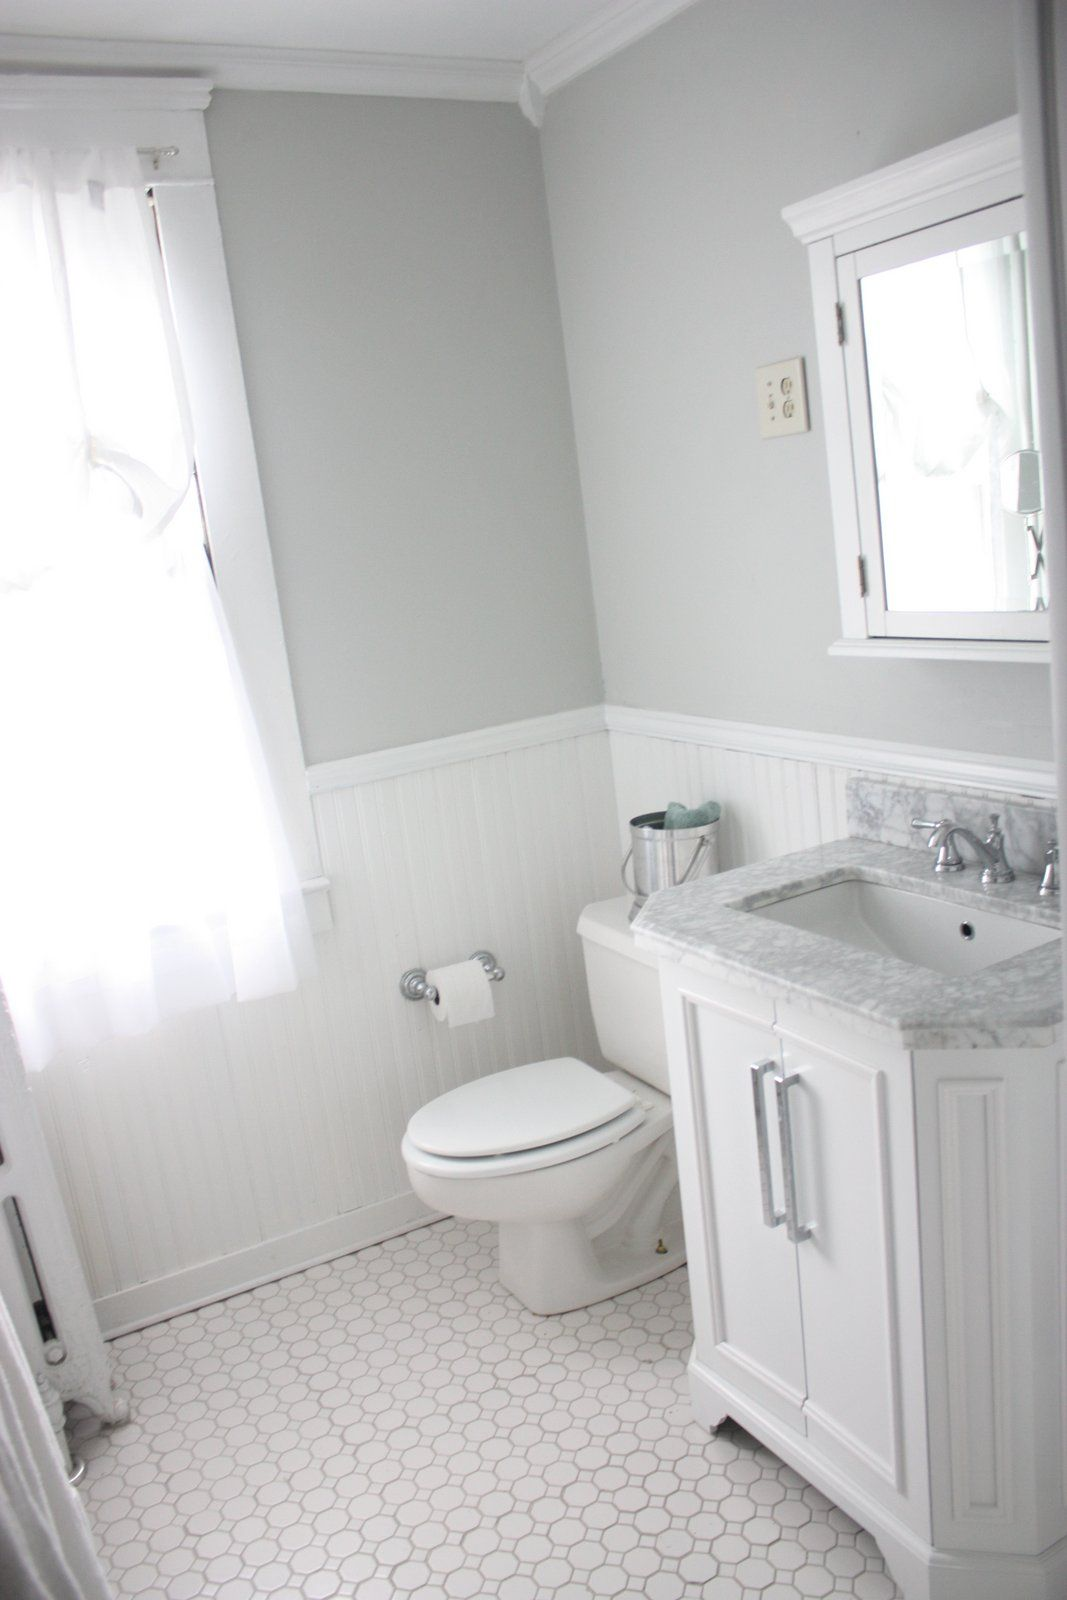 Lowes Bathroom Paint White Carrara Bath Vanity With Top Lowes American Olean 12 X 12